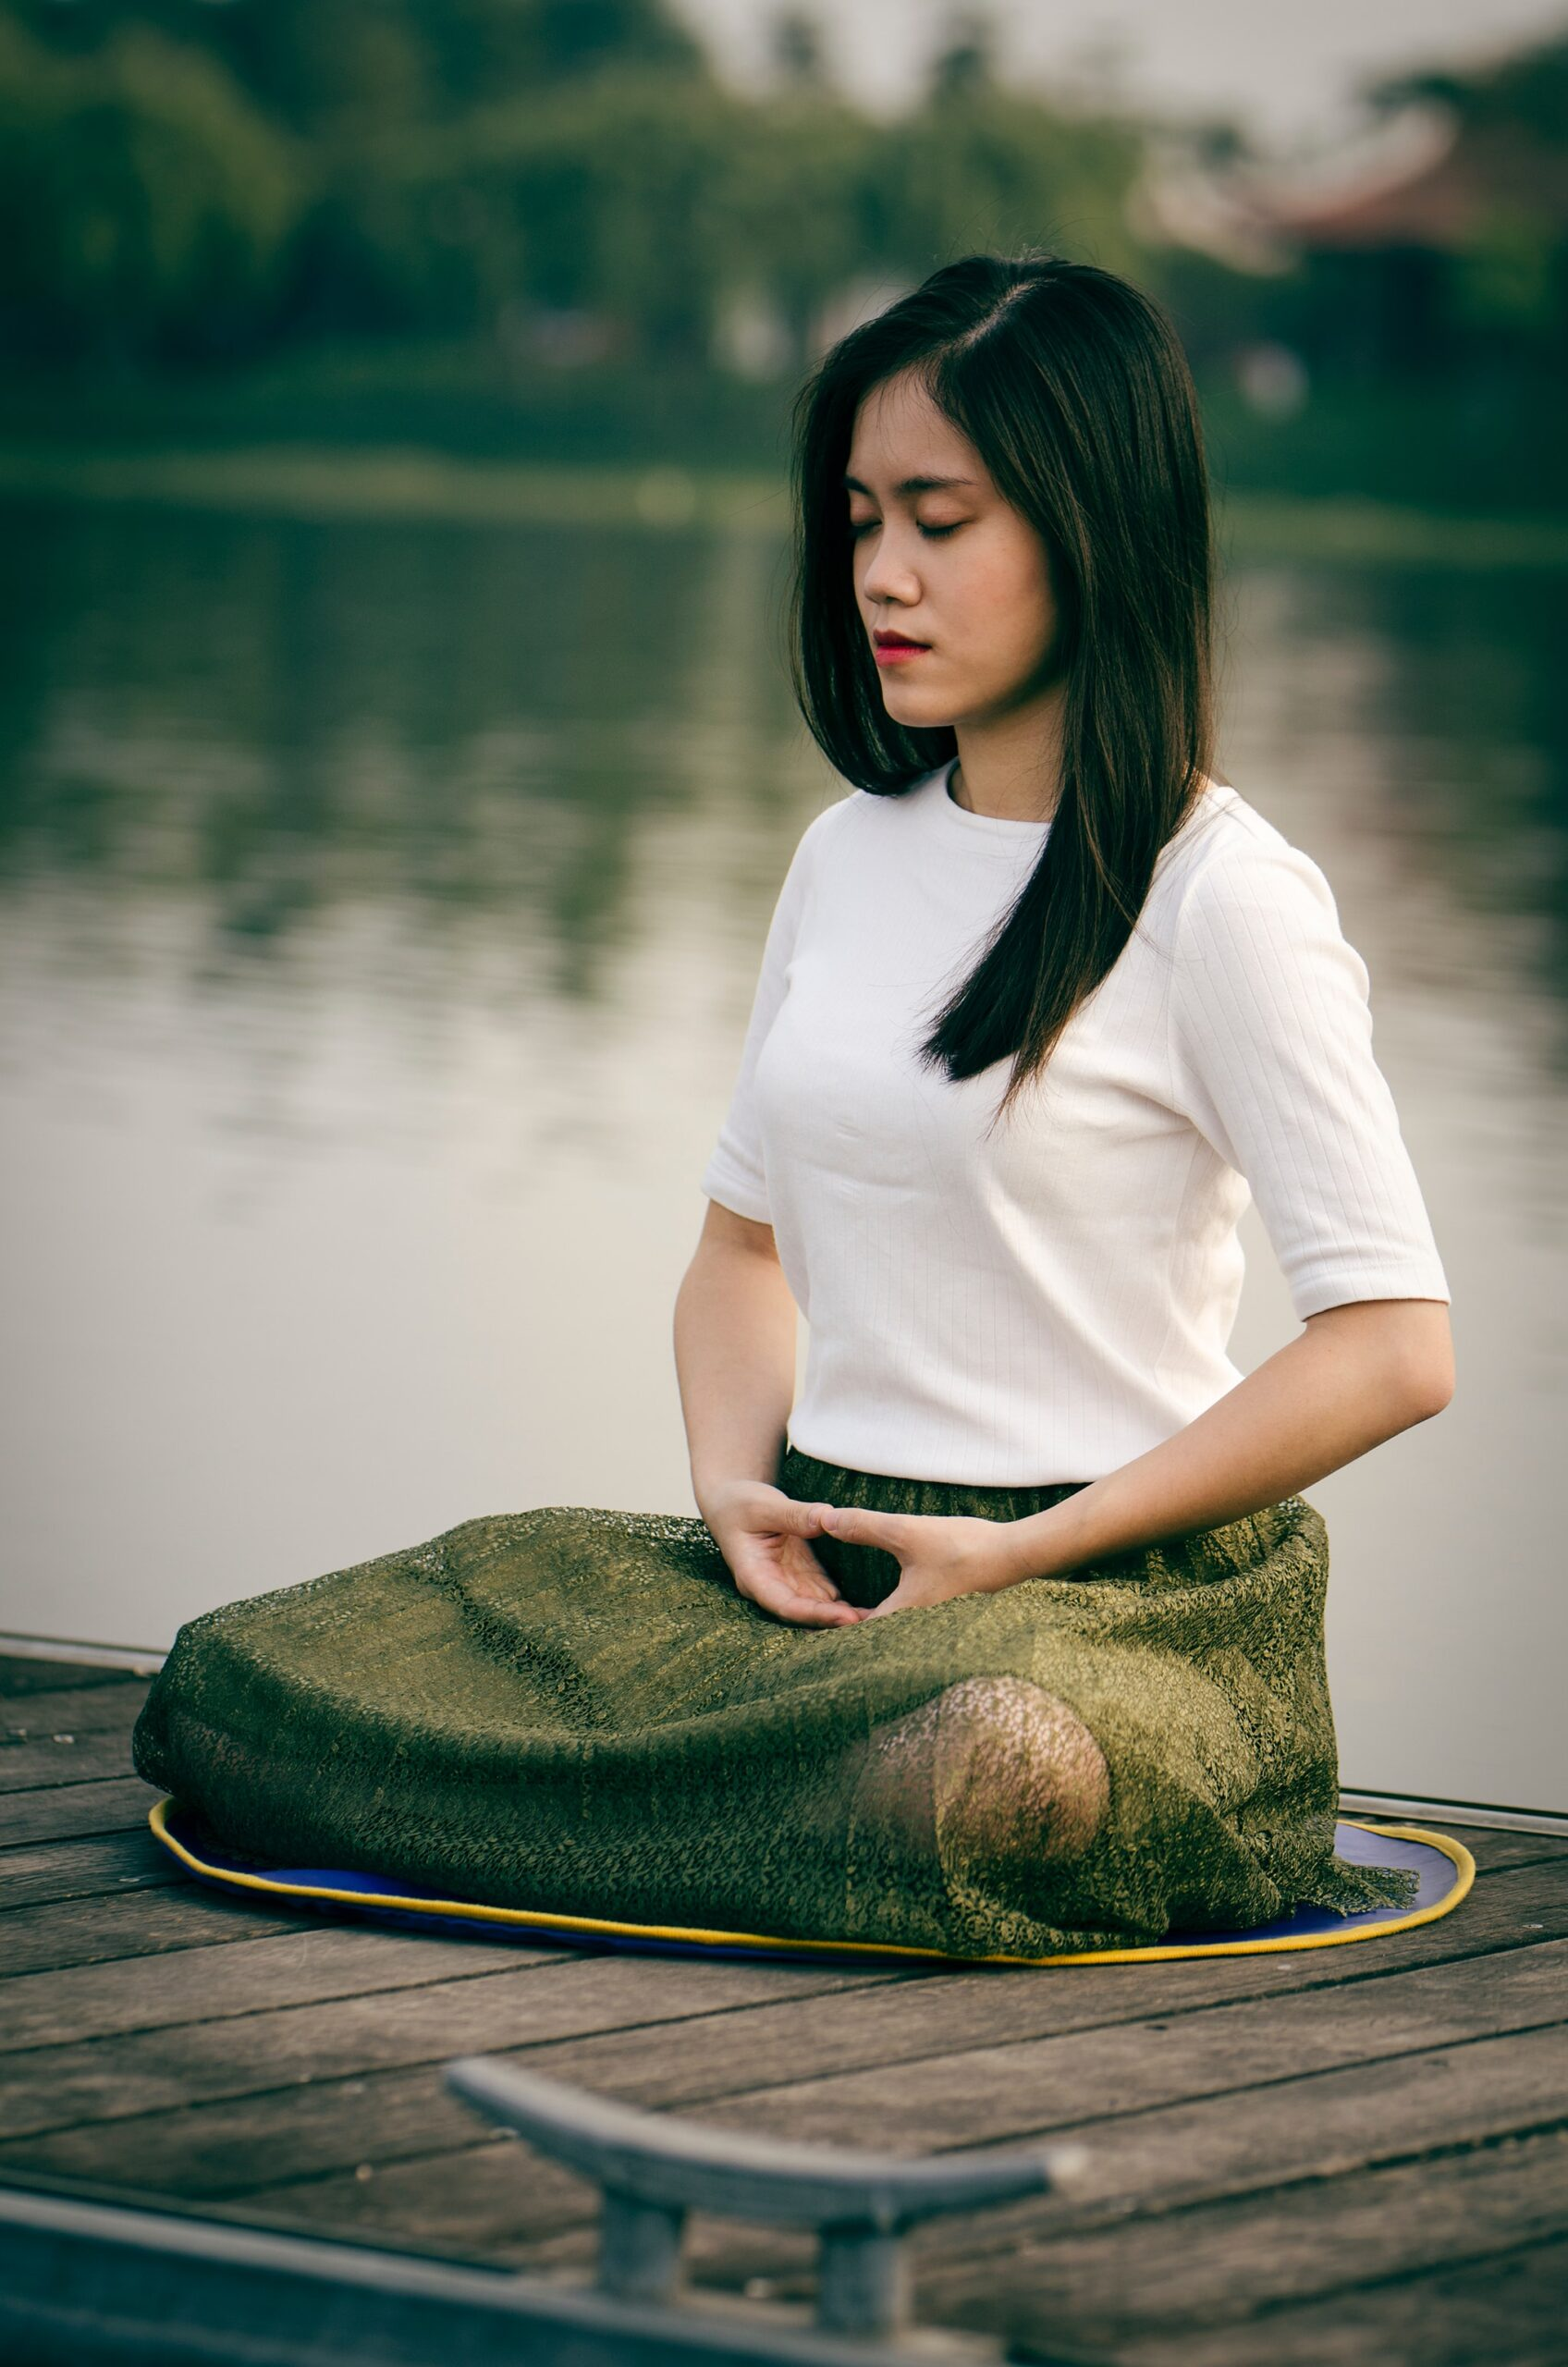 woman on lake dock meditating Le Minh Phuong photographer from Unsplah.